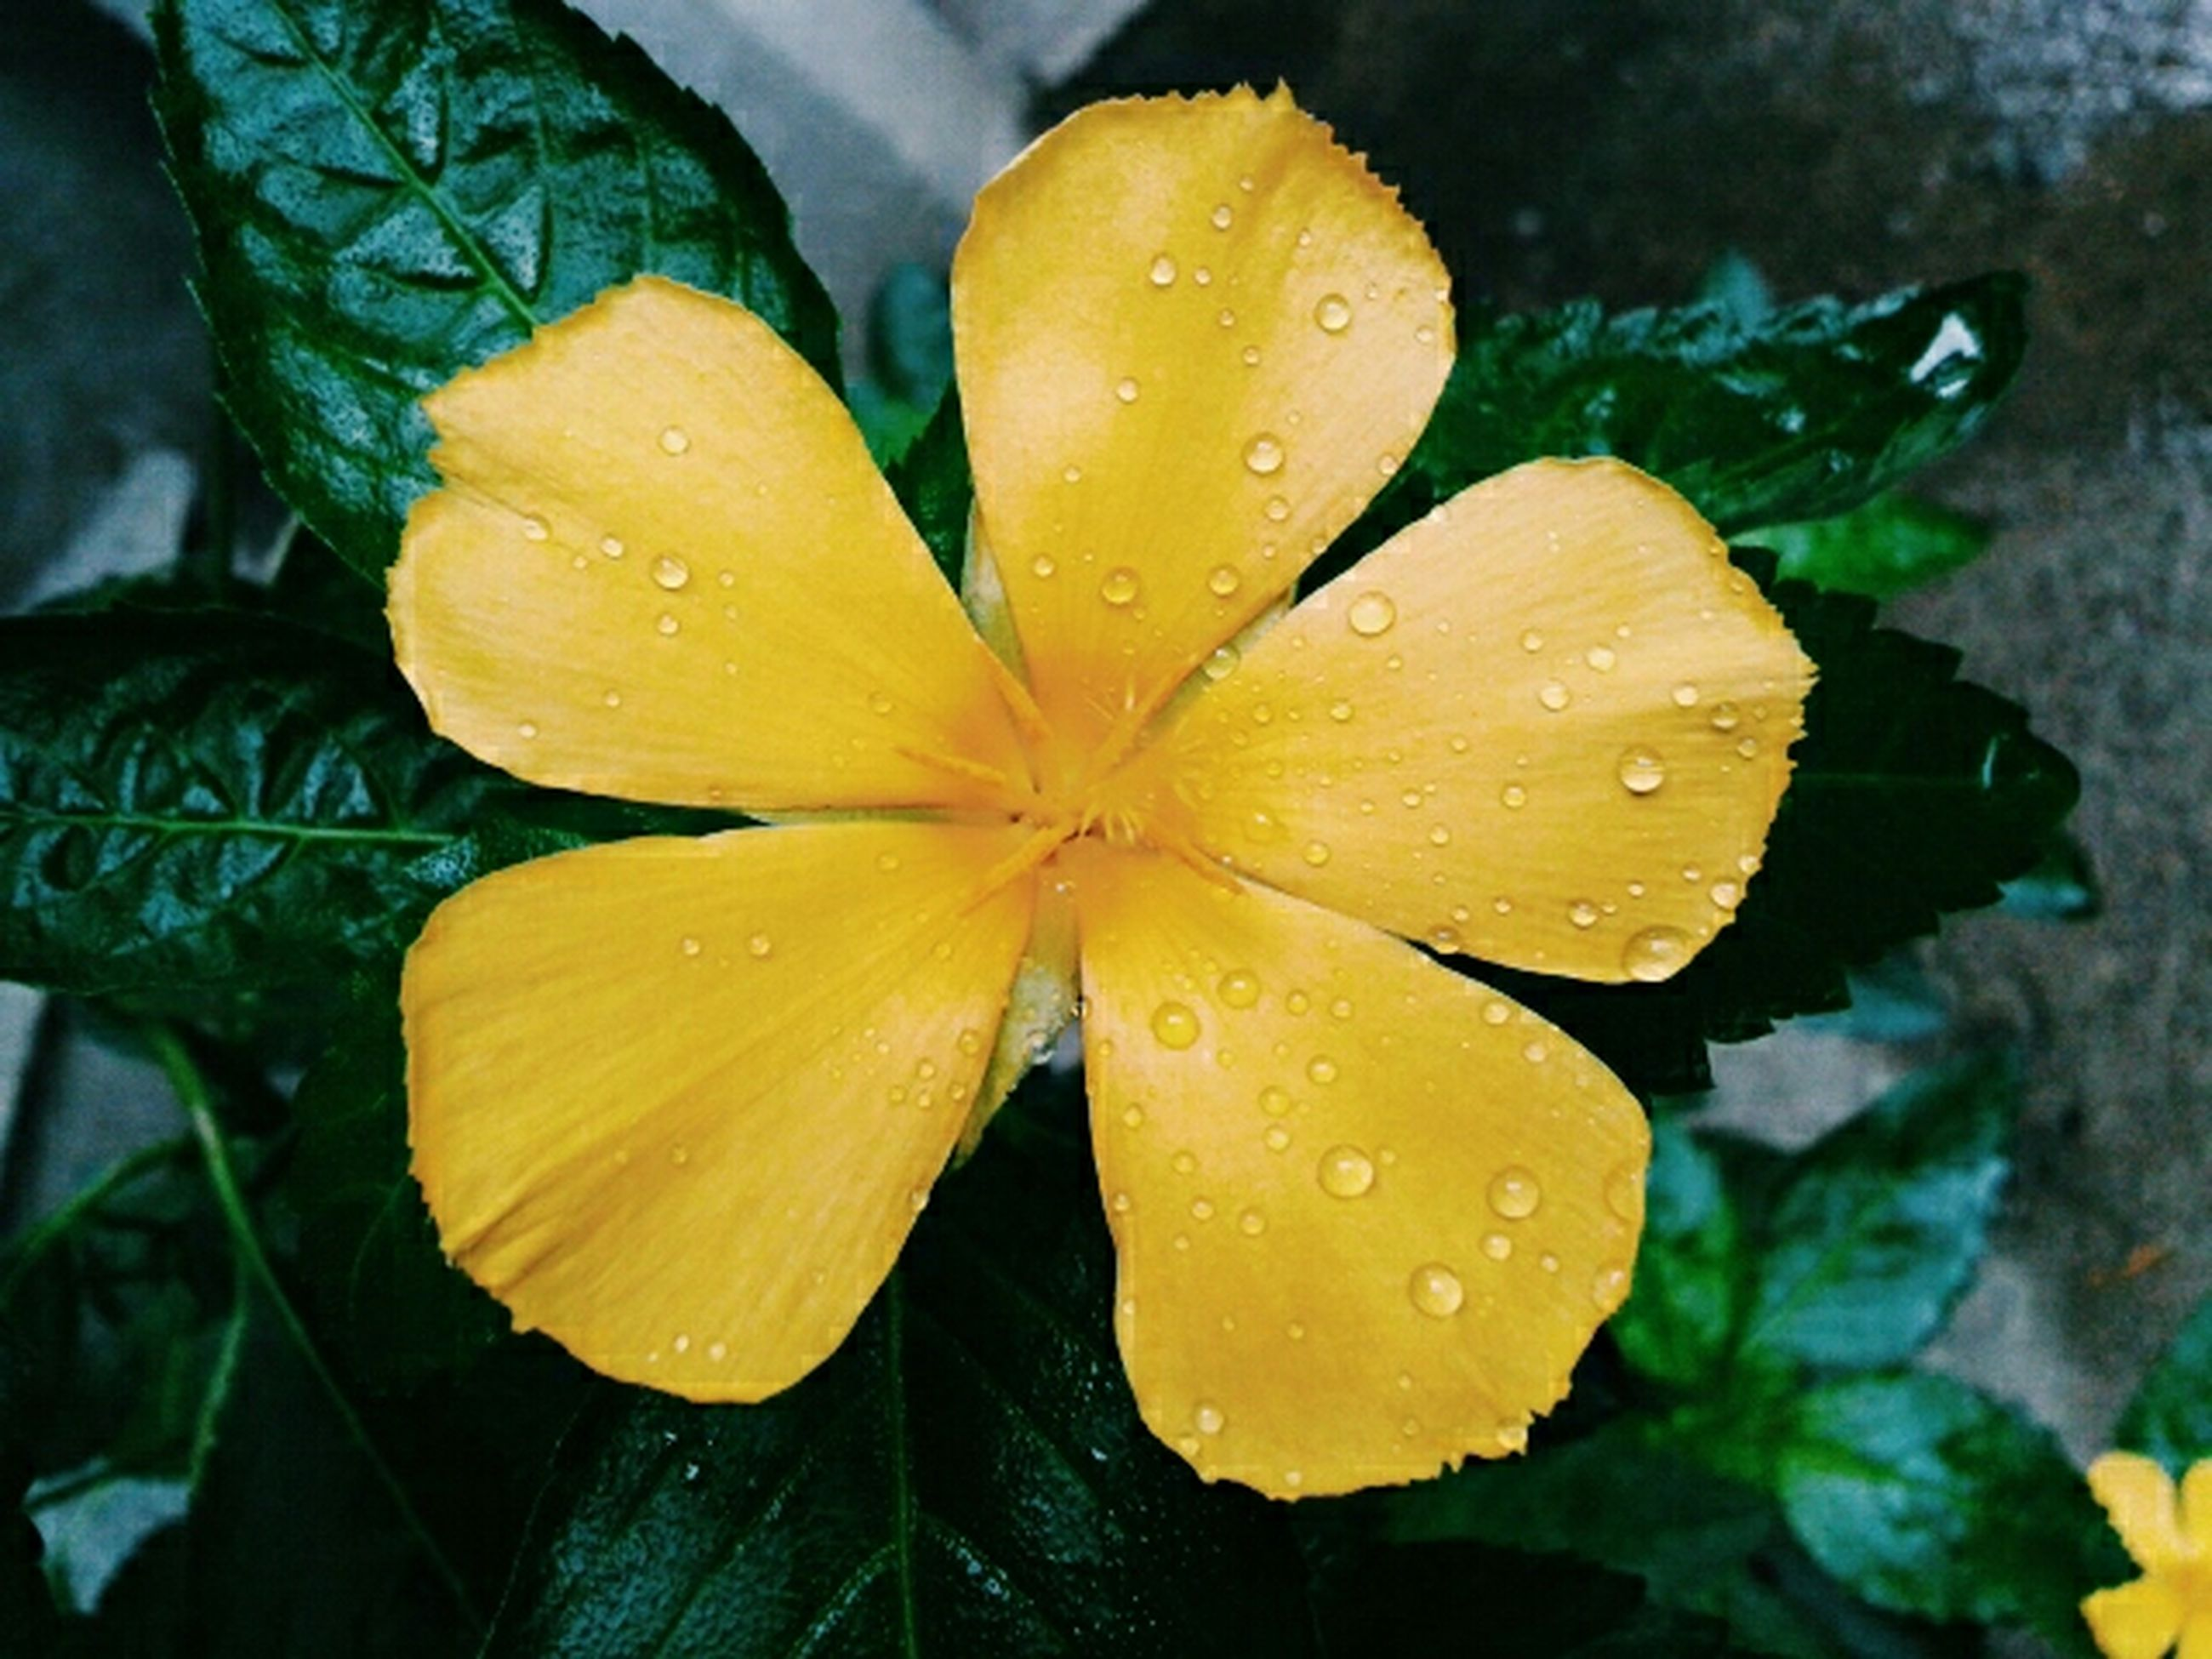 drop, freshness, wet, water, fragility, flower, yellow, petal, close-up, flower head, growth, beauty in nature, leaf, dew, nature, raindrop, rain, focus on foreground, plant, season